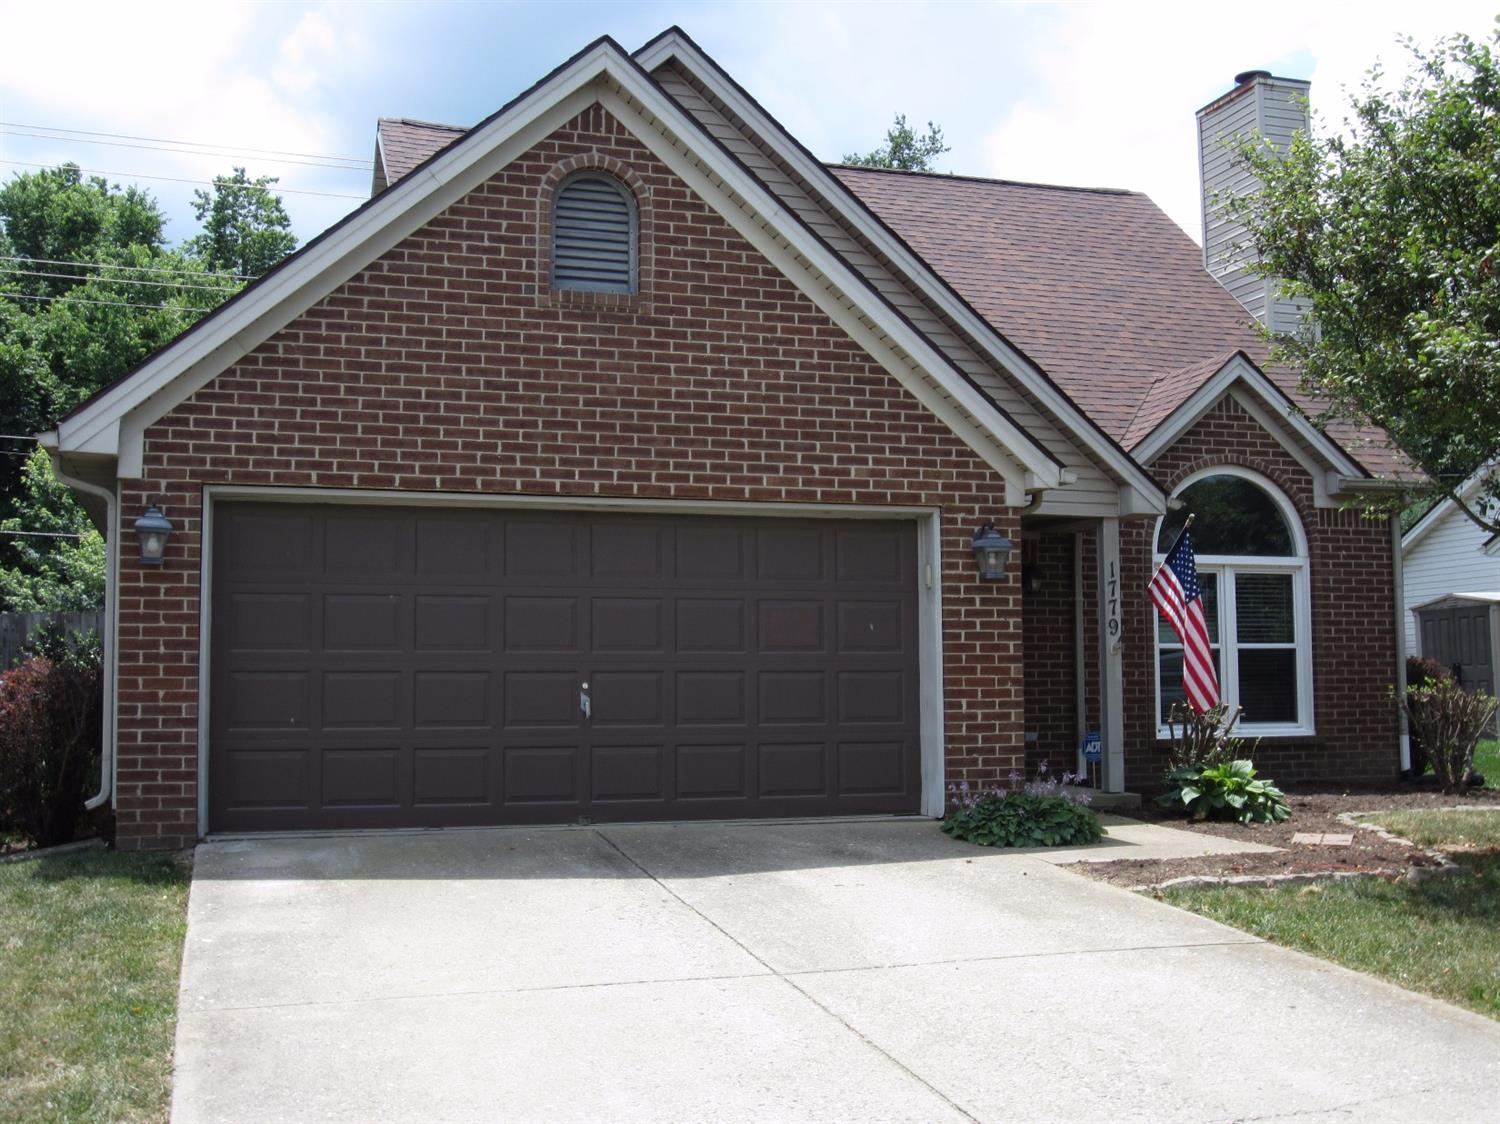 Home For Sale at 1188 Red Stone Dr, Lexington, KY 40509